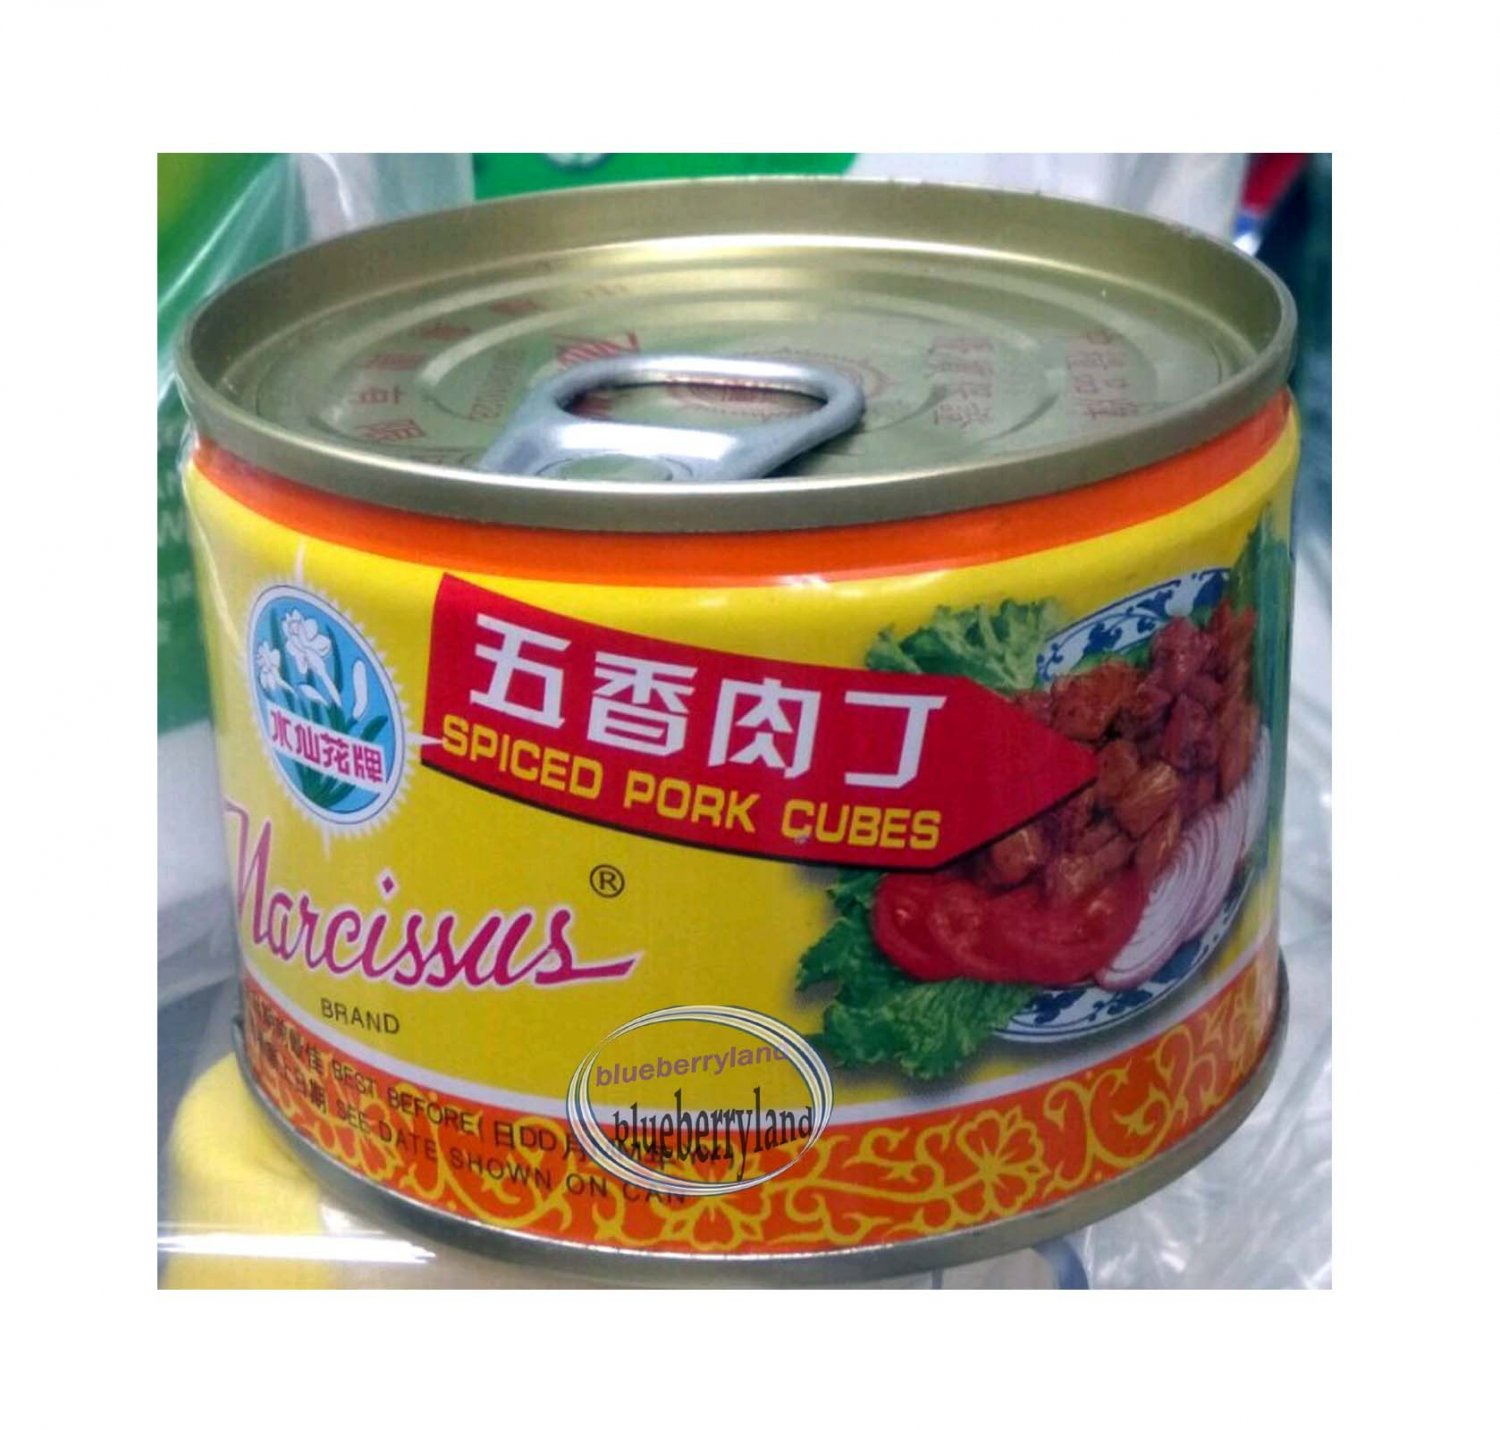 Canned Spiced Pork Cubes 142g Canned Pork Meat ����